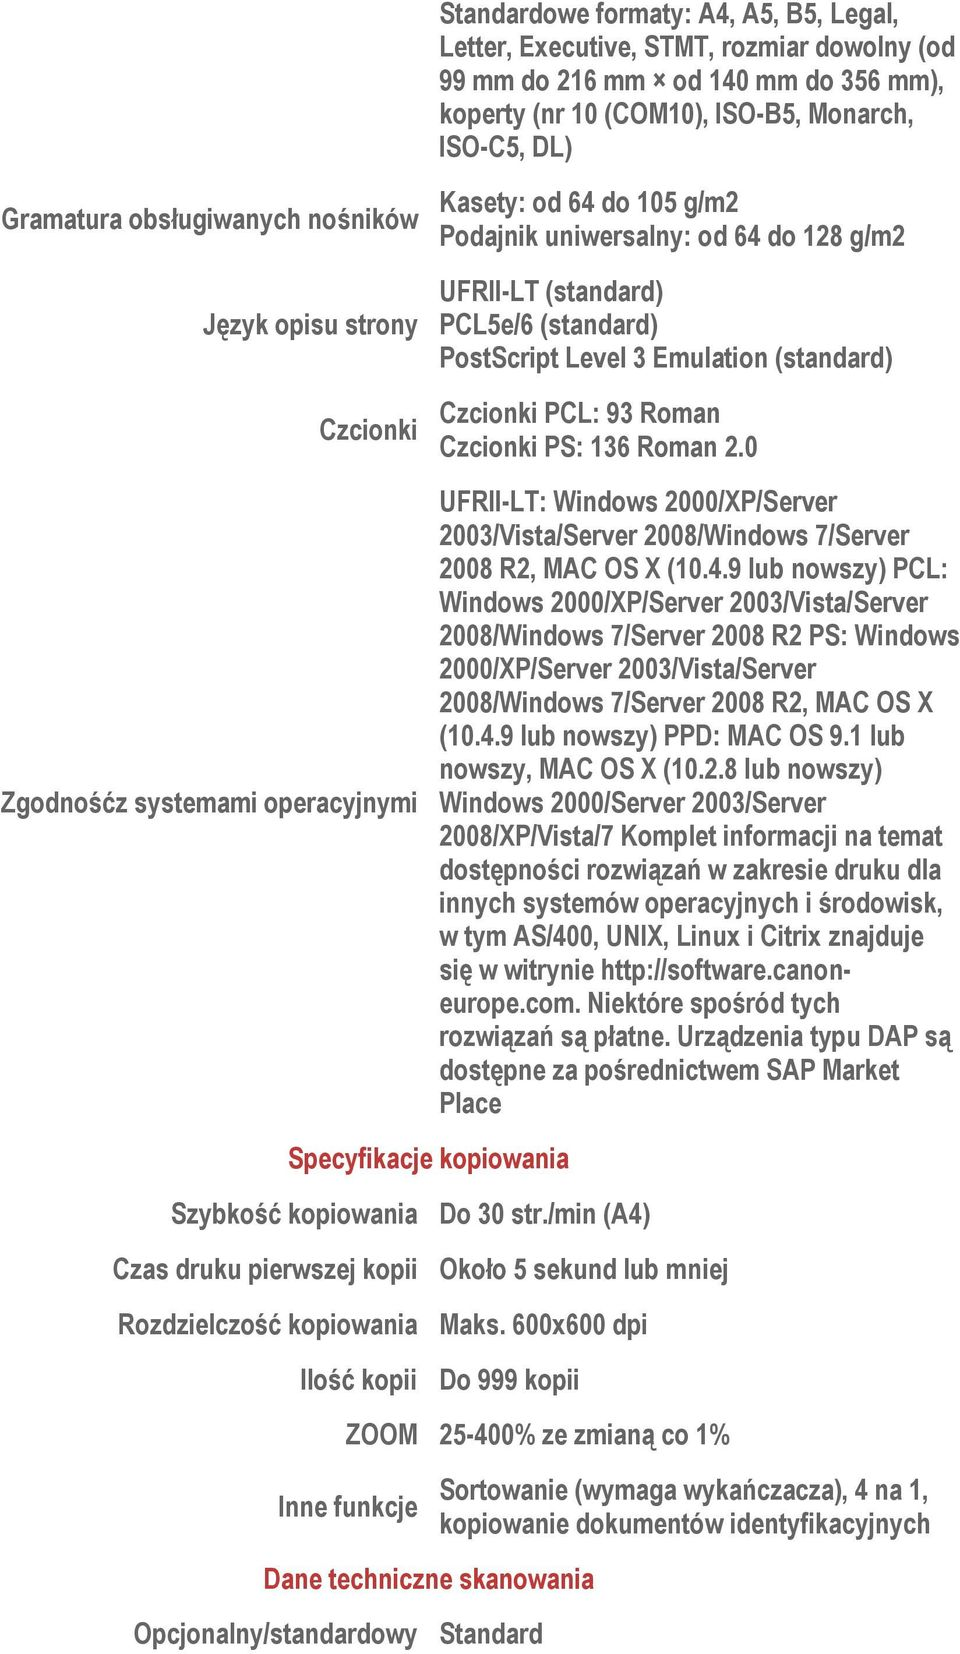 Emulation (standard) Czcionki PCL: 93 Roman Czcionki PS: 136 Roman 2.0 UFRII-LT: Windows 2000/XP/Server 2003/Vista/Server 2008/Windows 7/Server 2008 R2, MAC OS X (10.4.